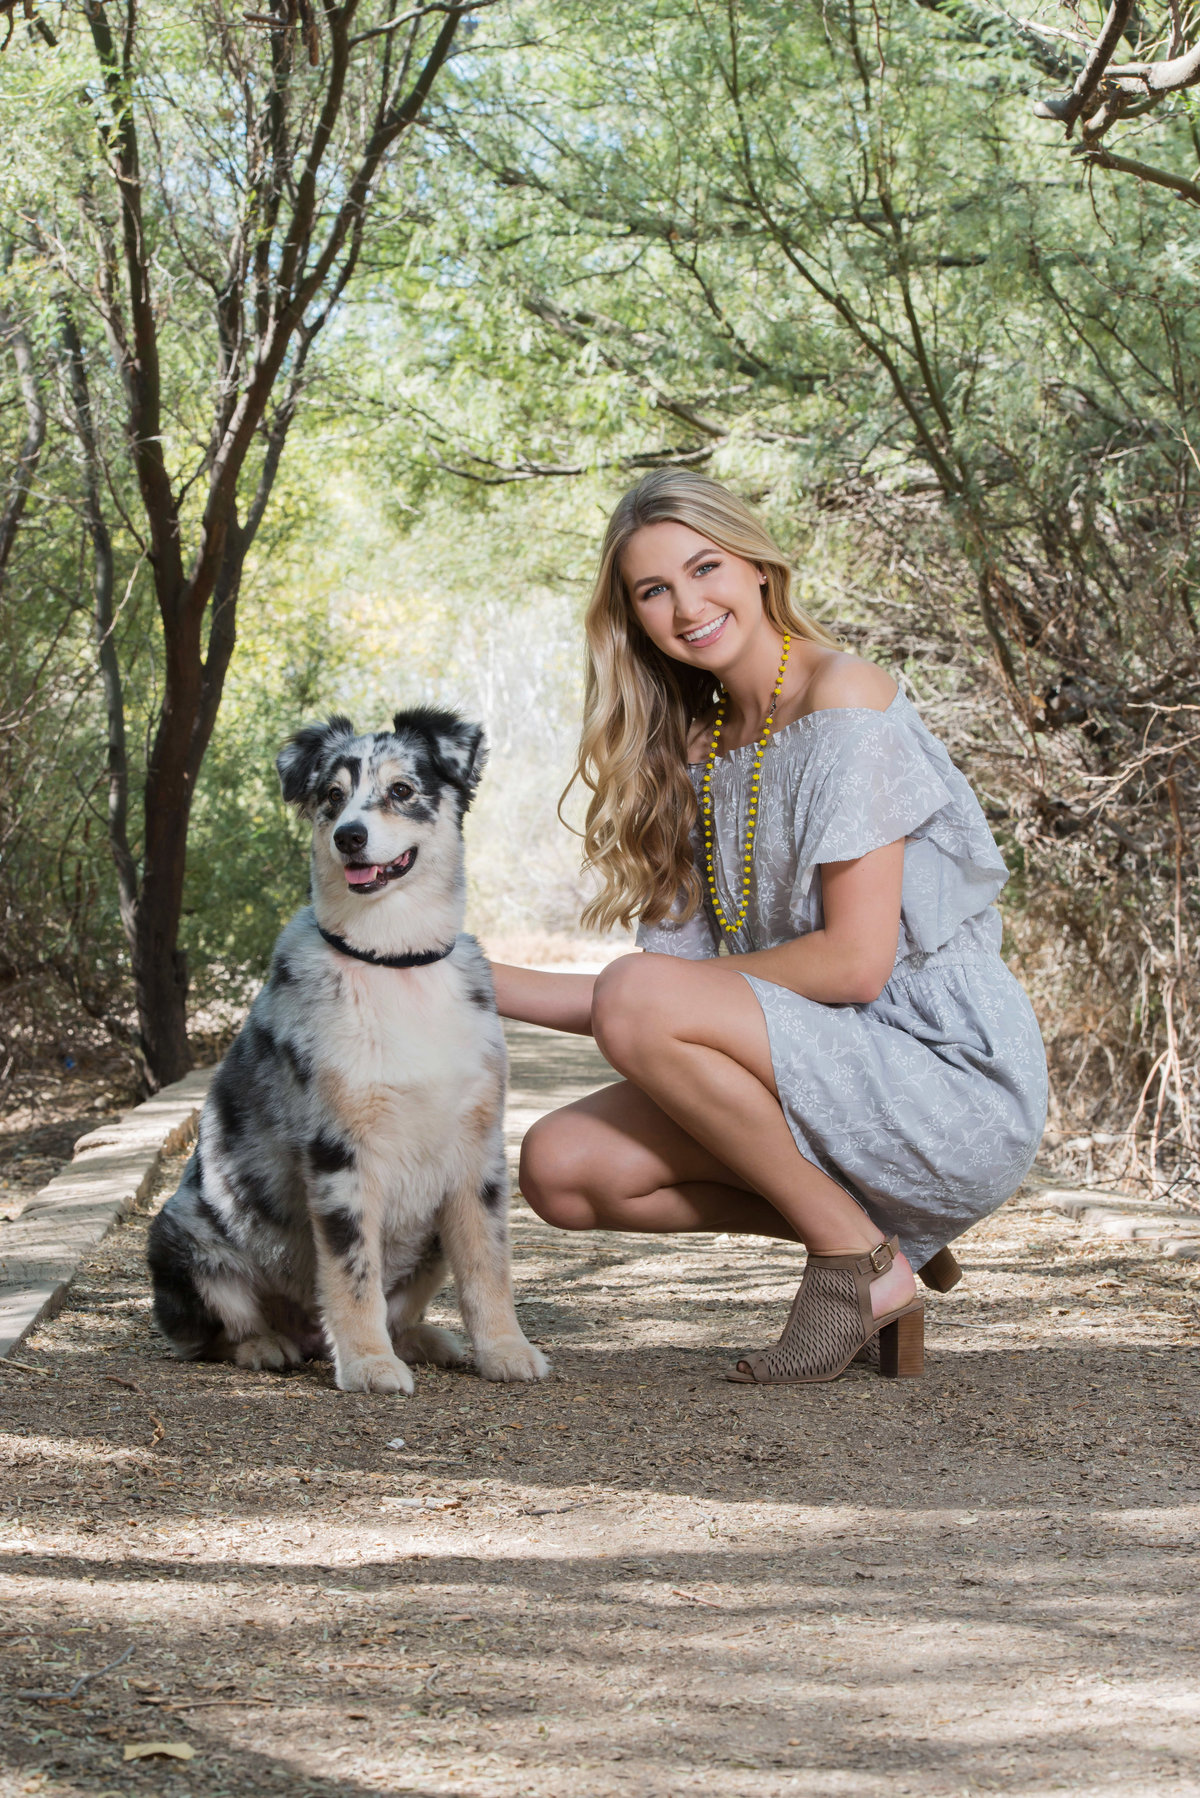 senior wih grey dress and dog